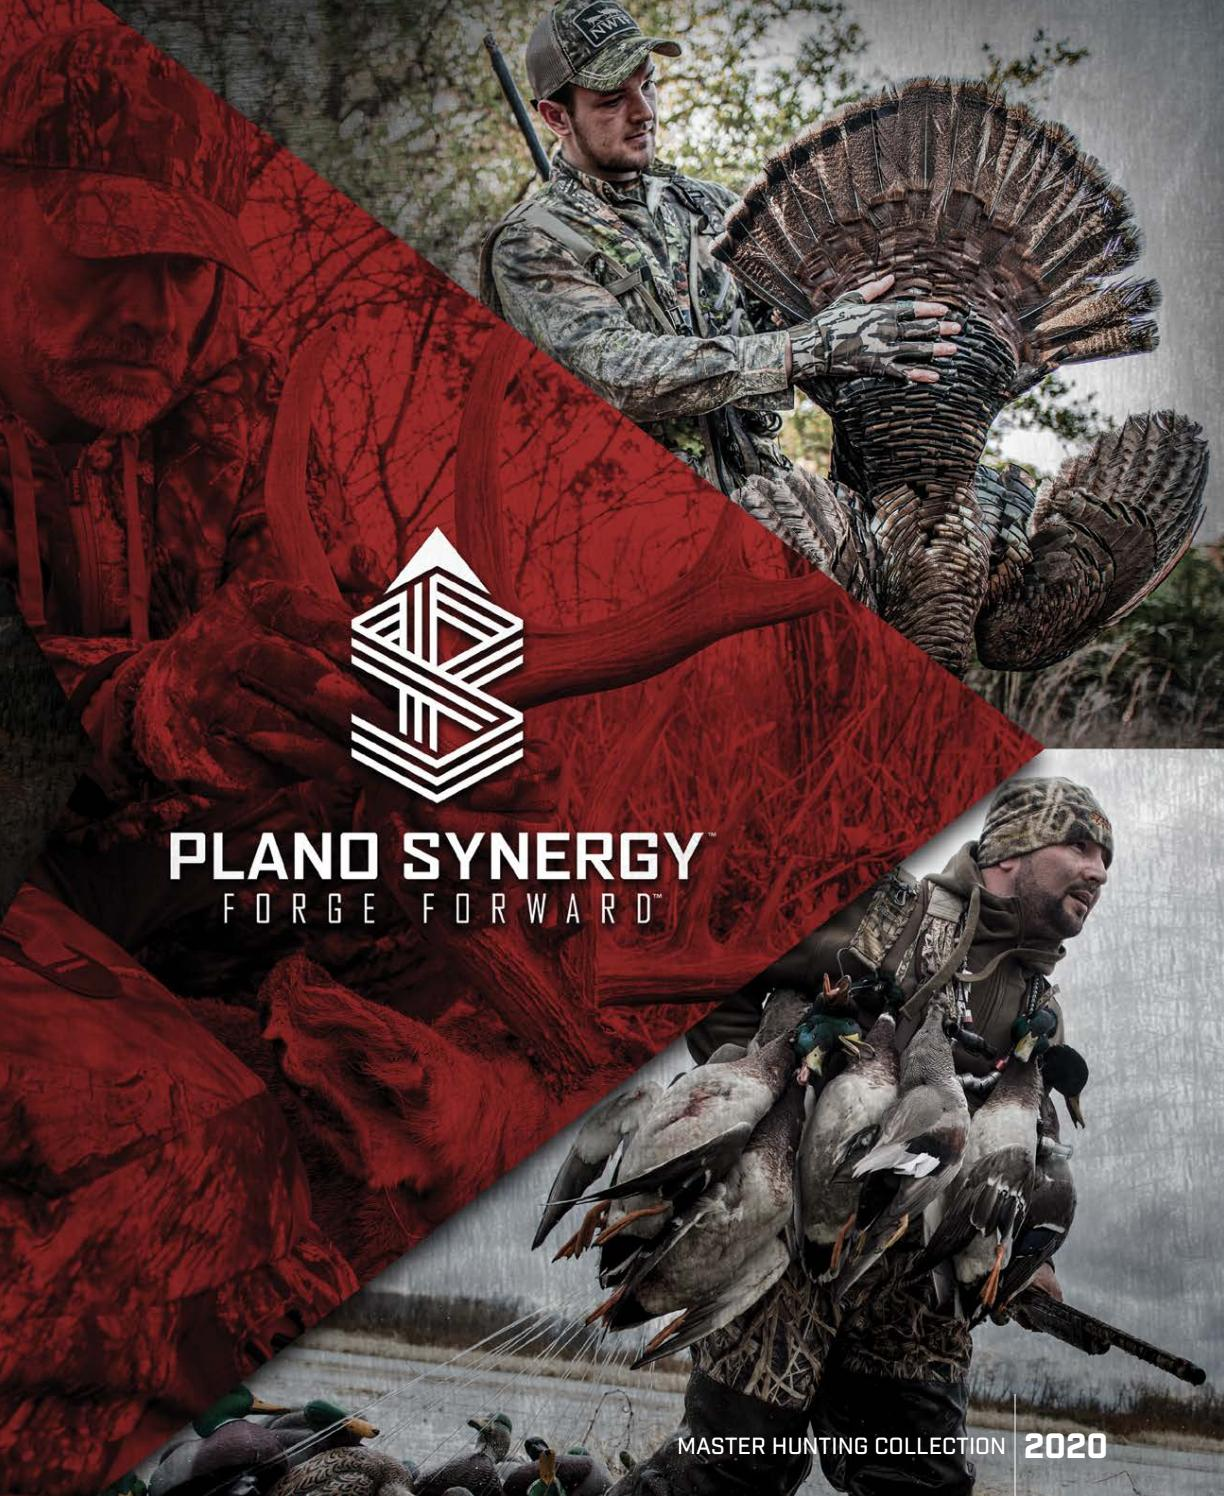 Master Hunting Collection 2020 By Planosynergy Issuu